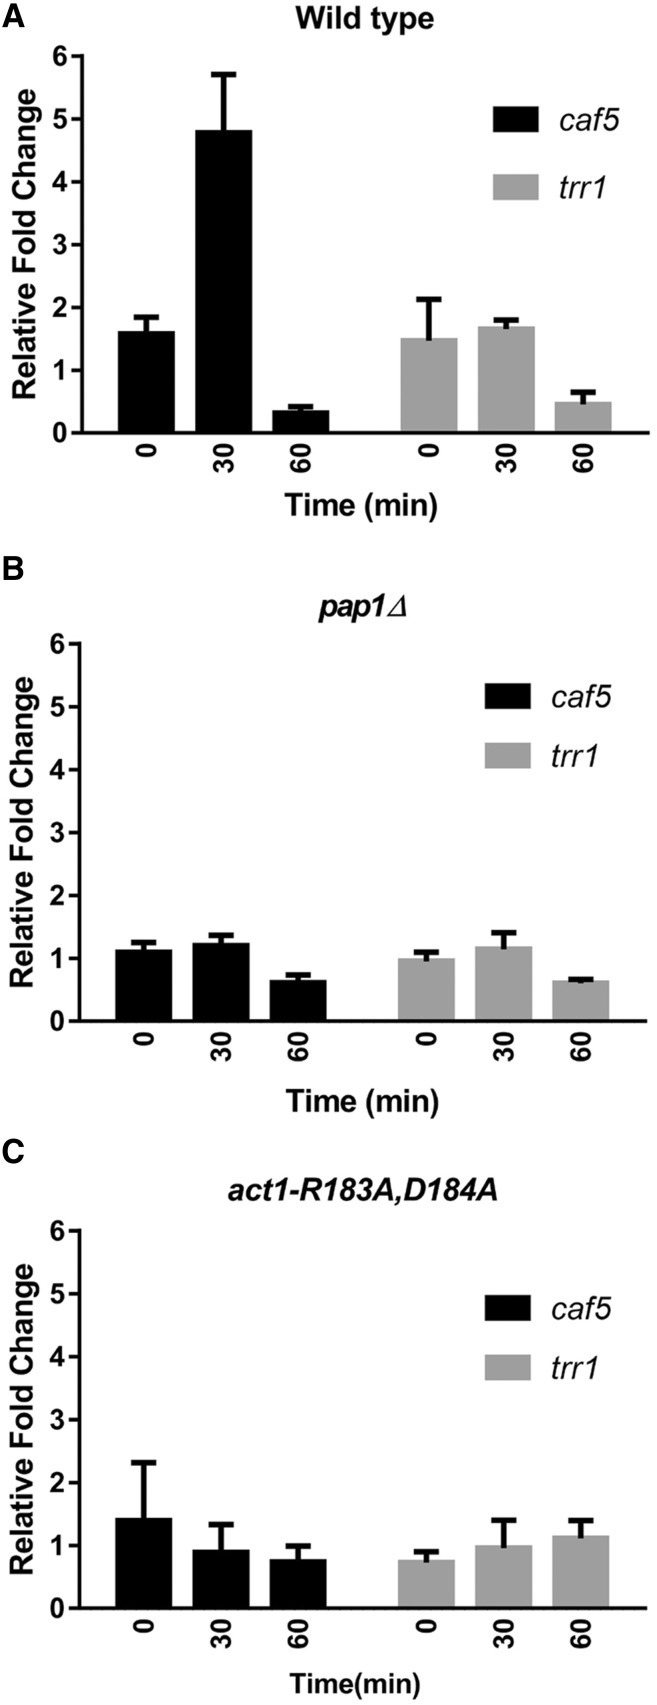 The caf5 gene is induced in a pap1 -dependent manner in response to LatA. <t>qRT-PCR</t> analysis of caf5 and trr1 expression (relative to gpd1 ) in response to 0.3 μM LatA treatment in (A) wild-type, (B) pap1 Δ, and (C) act1-R183A , D184A backgrounds. The level of caf5 and trr1 transcripts were normalized to that of the internal control gpd1 . The normalized level of the transcripts in LatA-treated cells is shown relative to that of DMSO controls. The mean ± SE for three biological replicates is shown. DMSO, dimethyl sulfoxide; LatA, latrunculin A; qRT-PCR, quantitative real time-polymerase chain reaction.